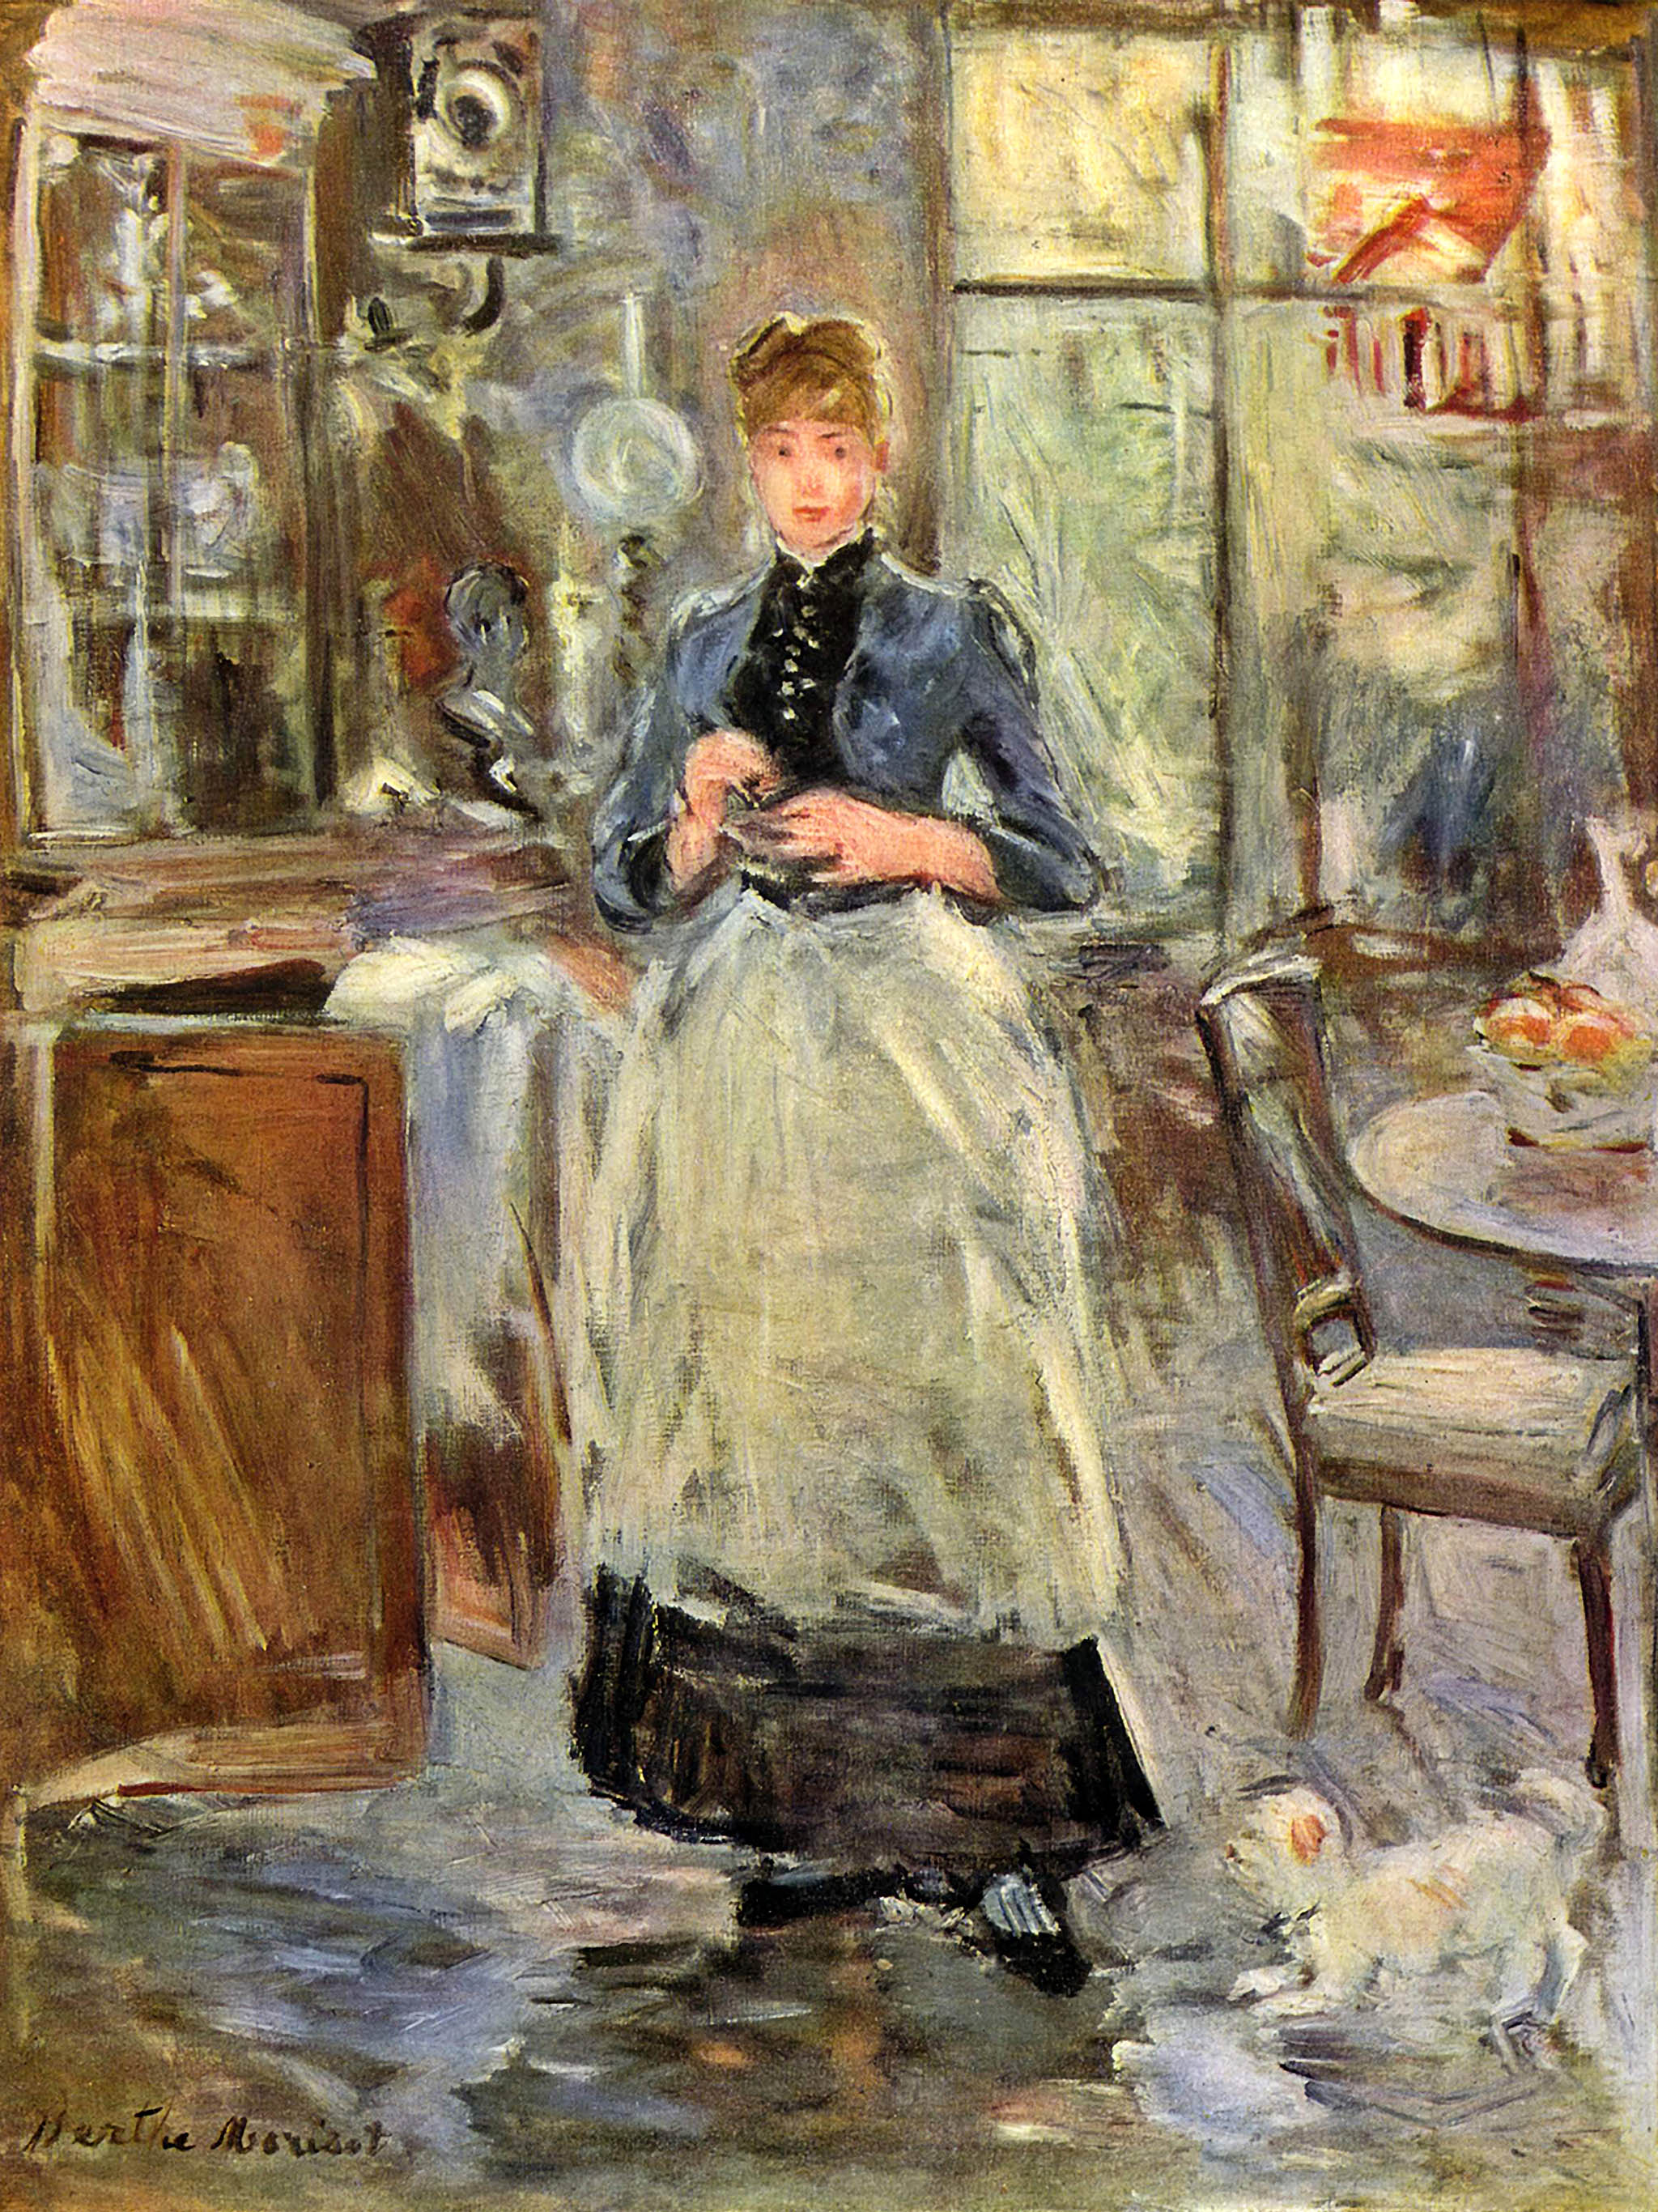 Berthe Morisot - In the Dining Room 2048x2732